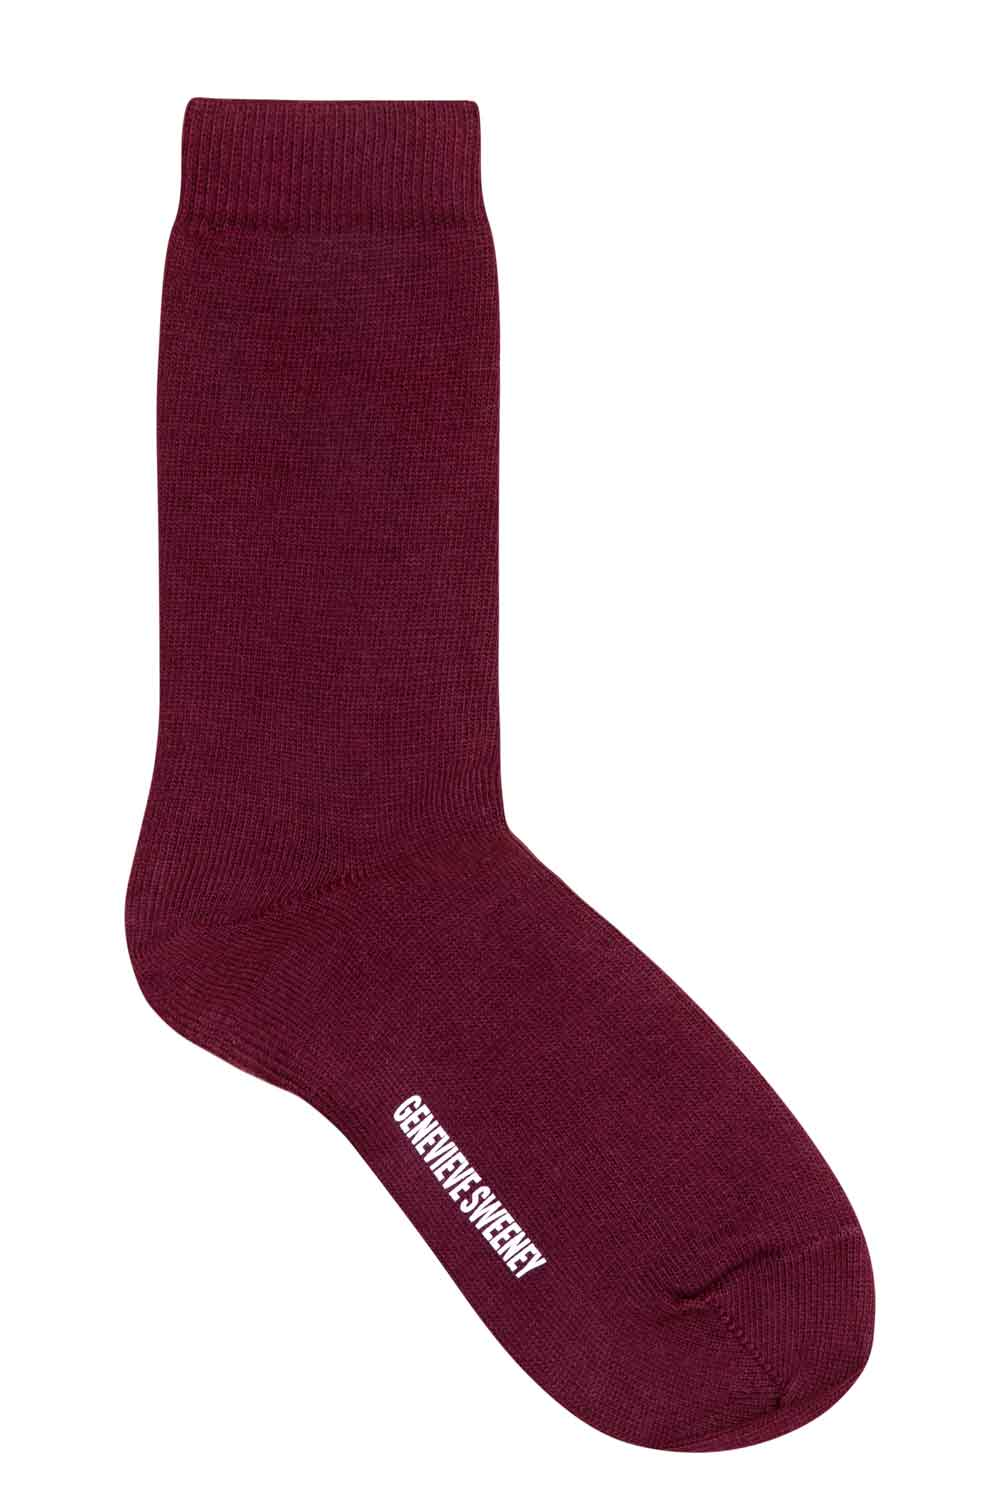 luxury berry cotton socks british made